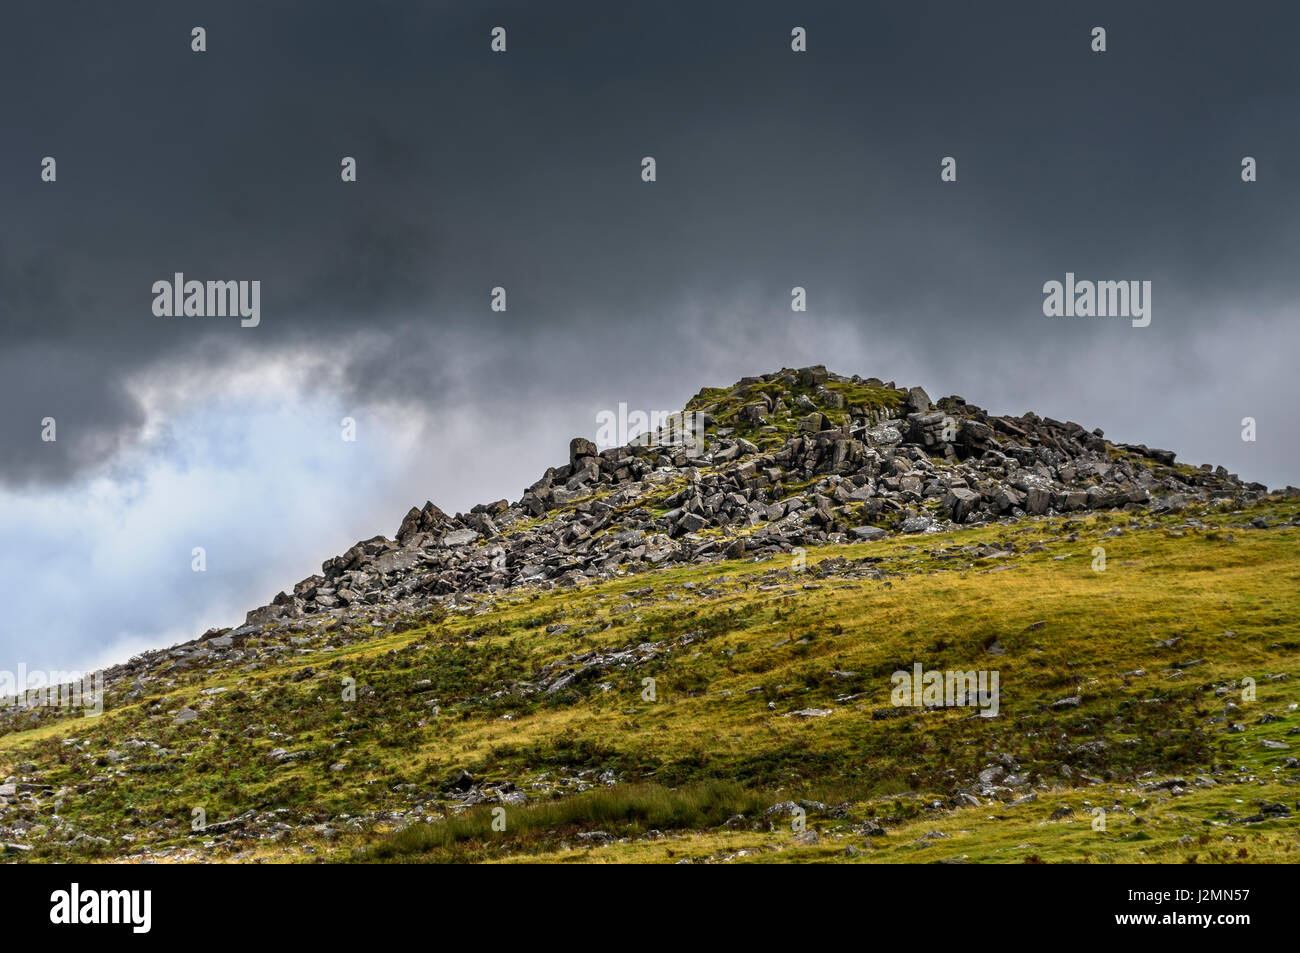 Sharpitor on Dartmoor, Devon UK - Stock Image